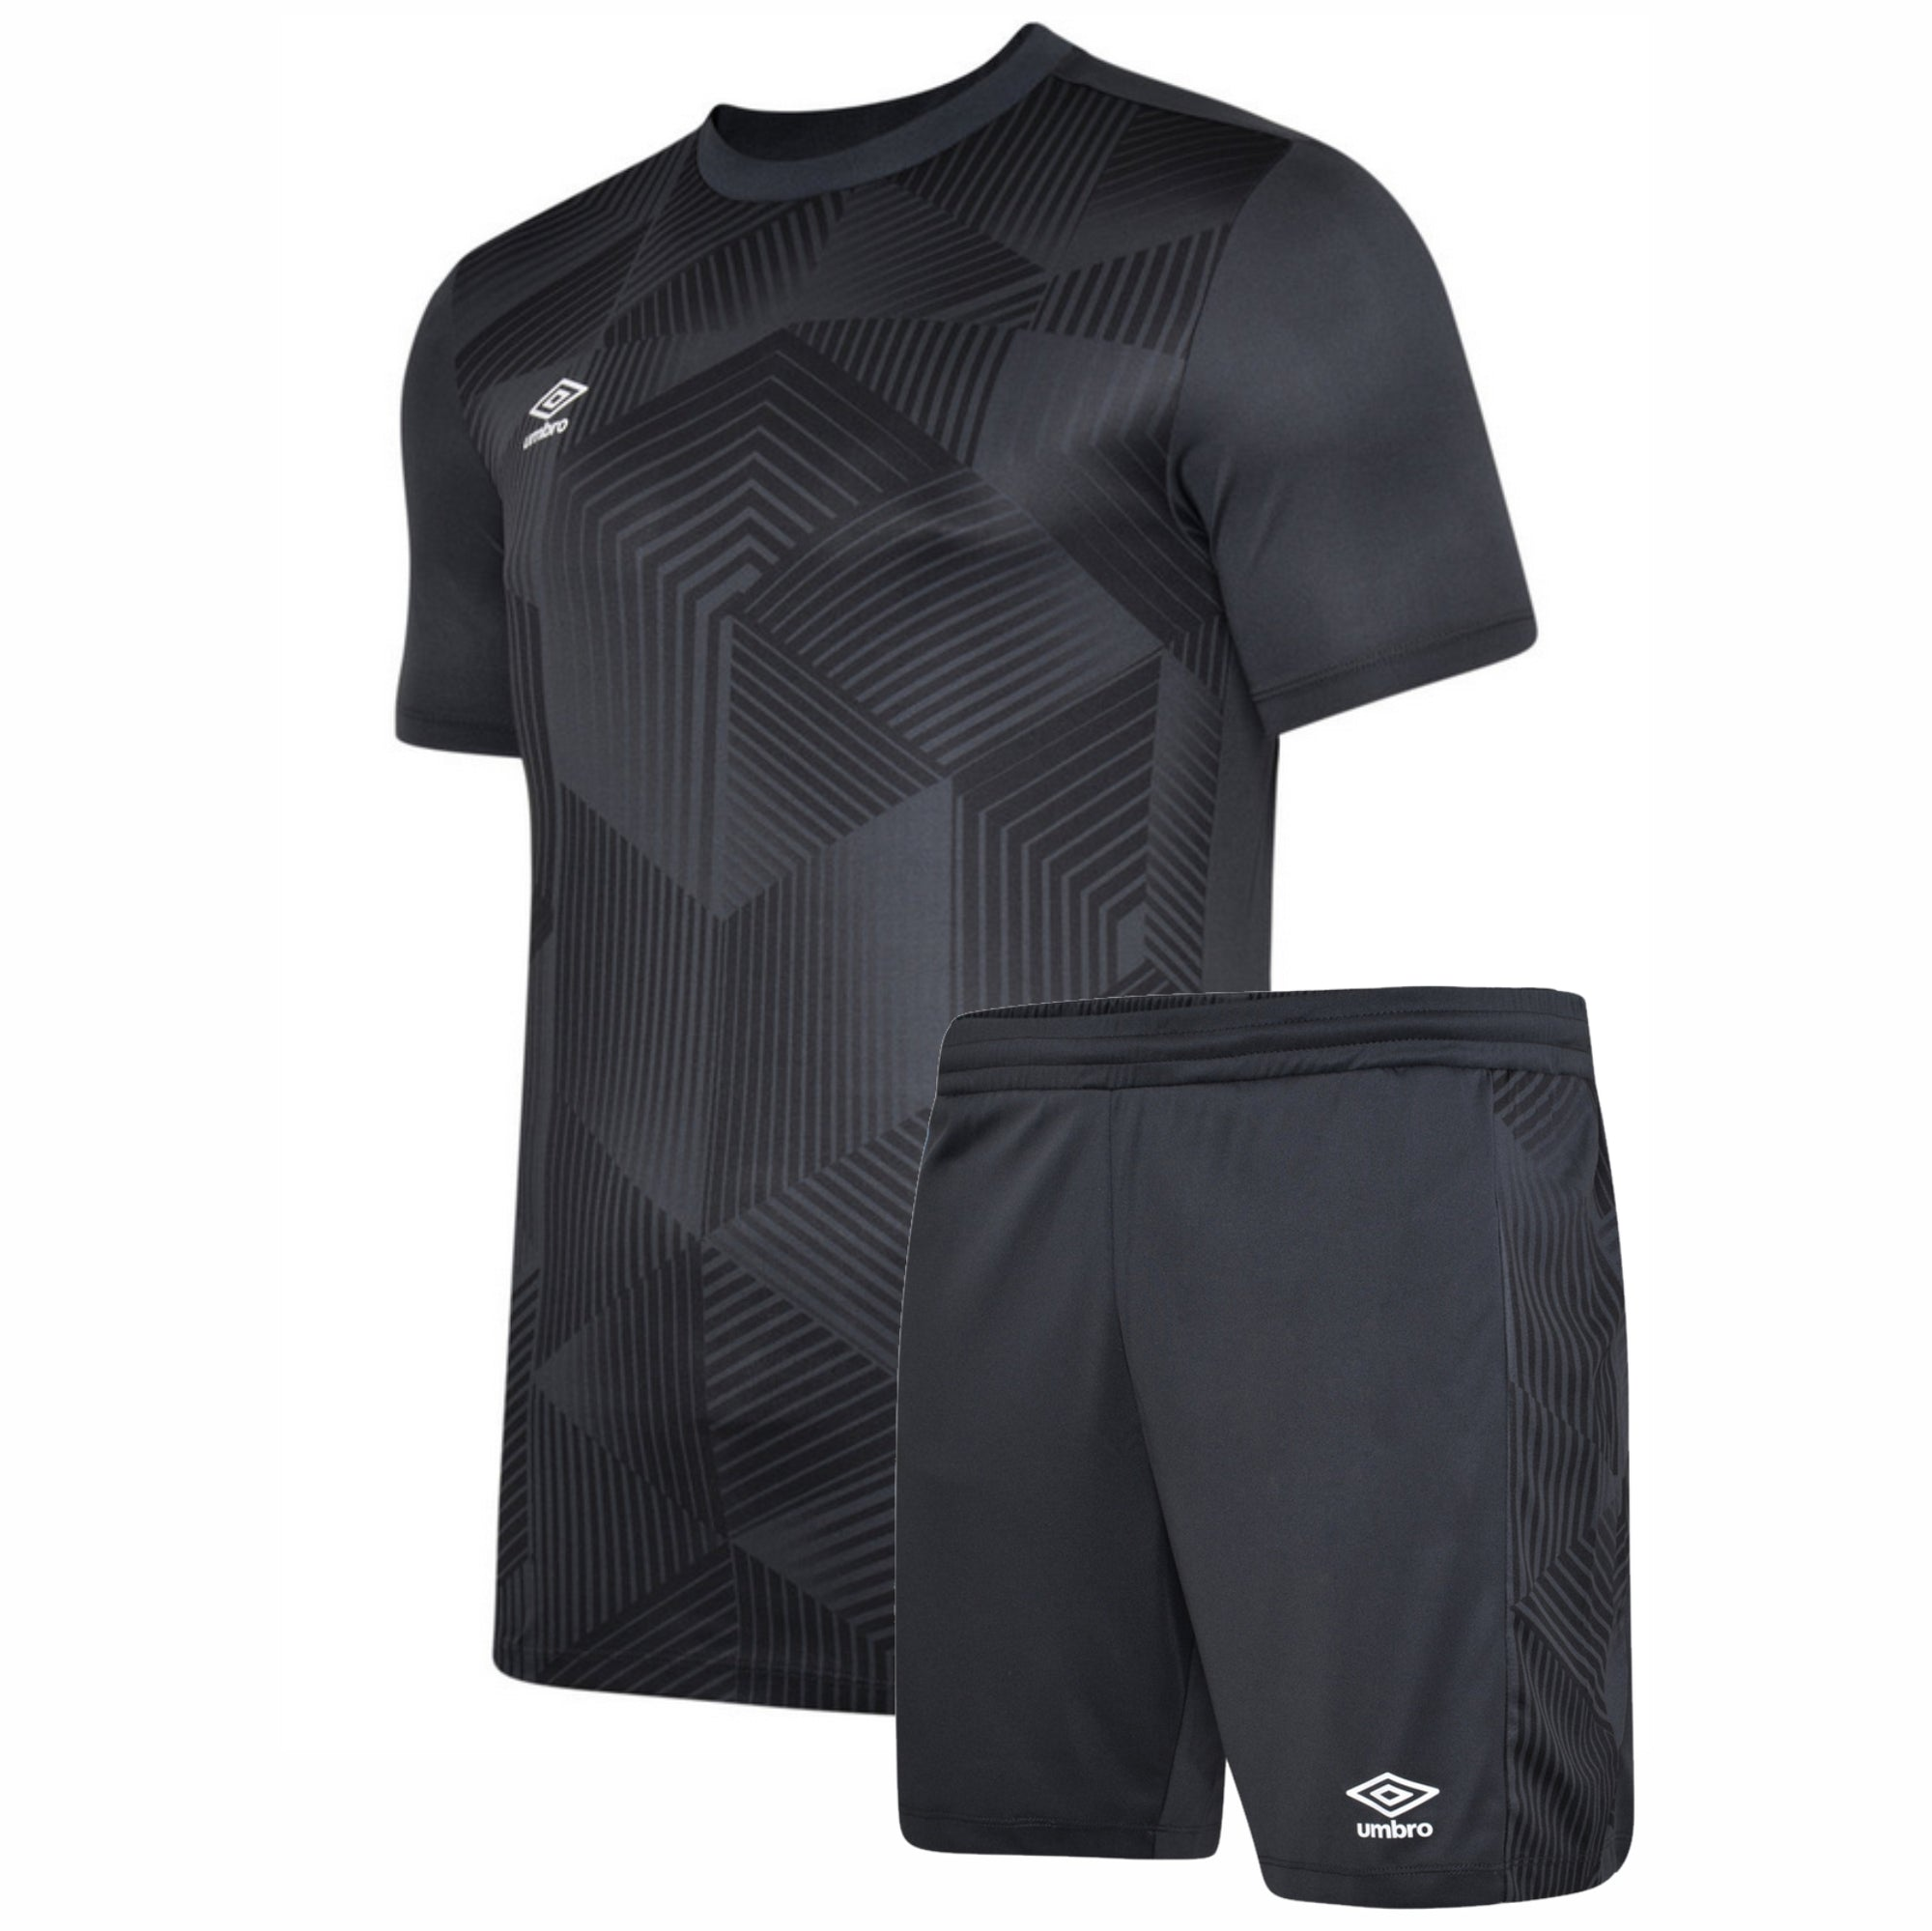 Umbro Maxium Kit Set - Black